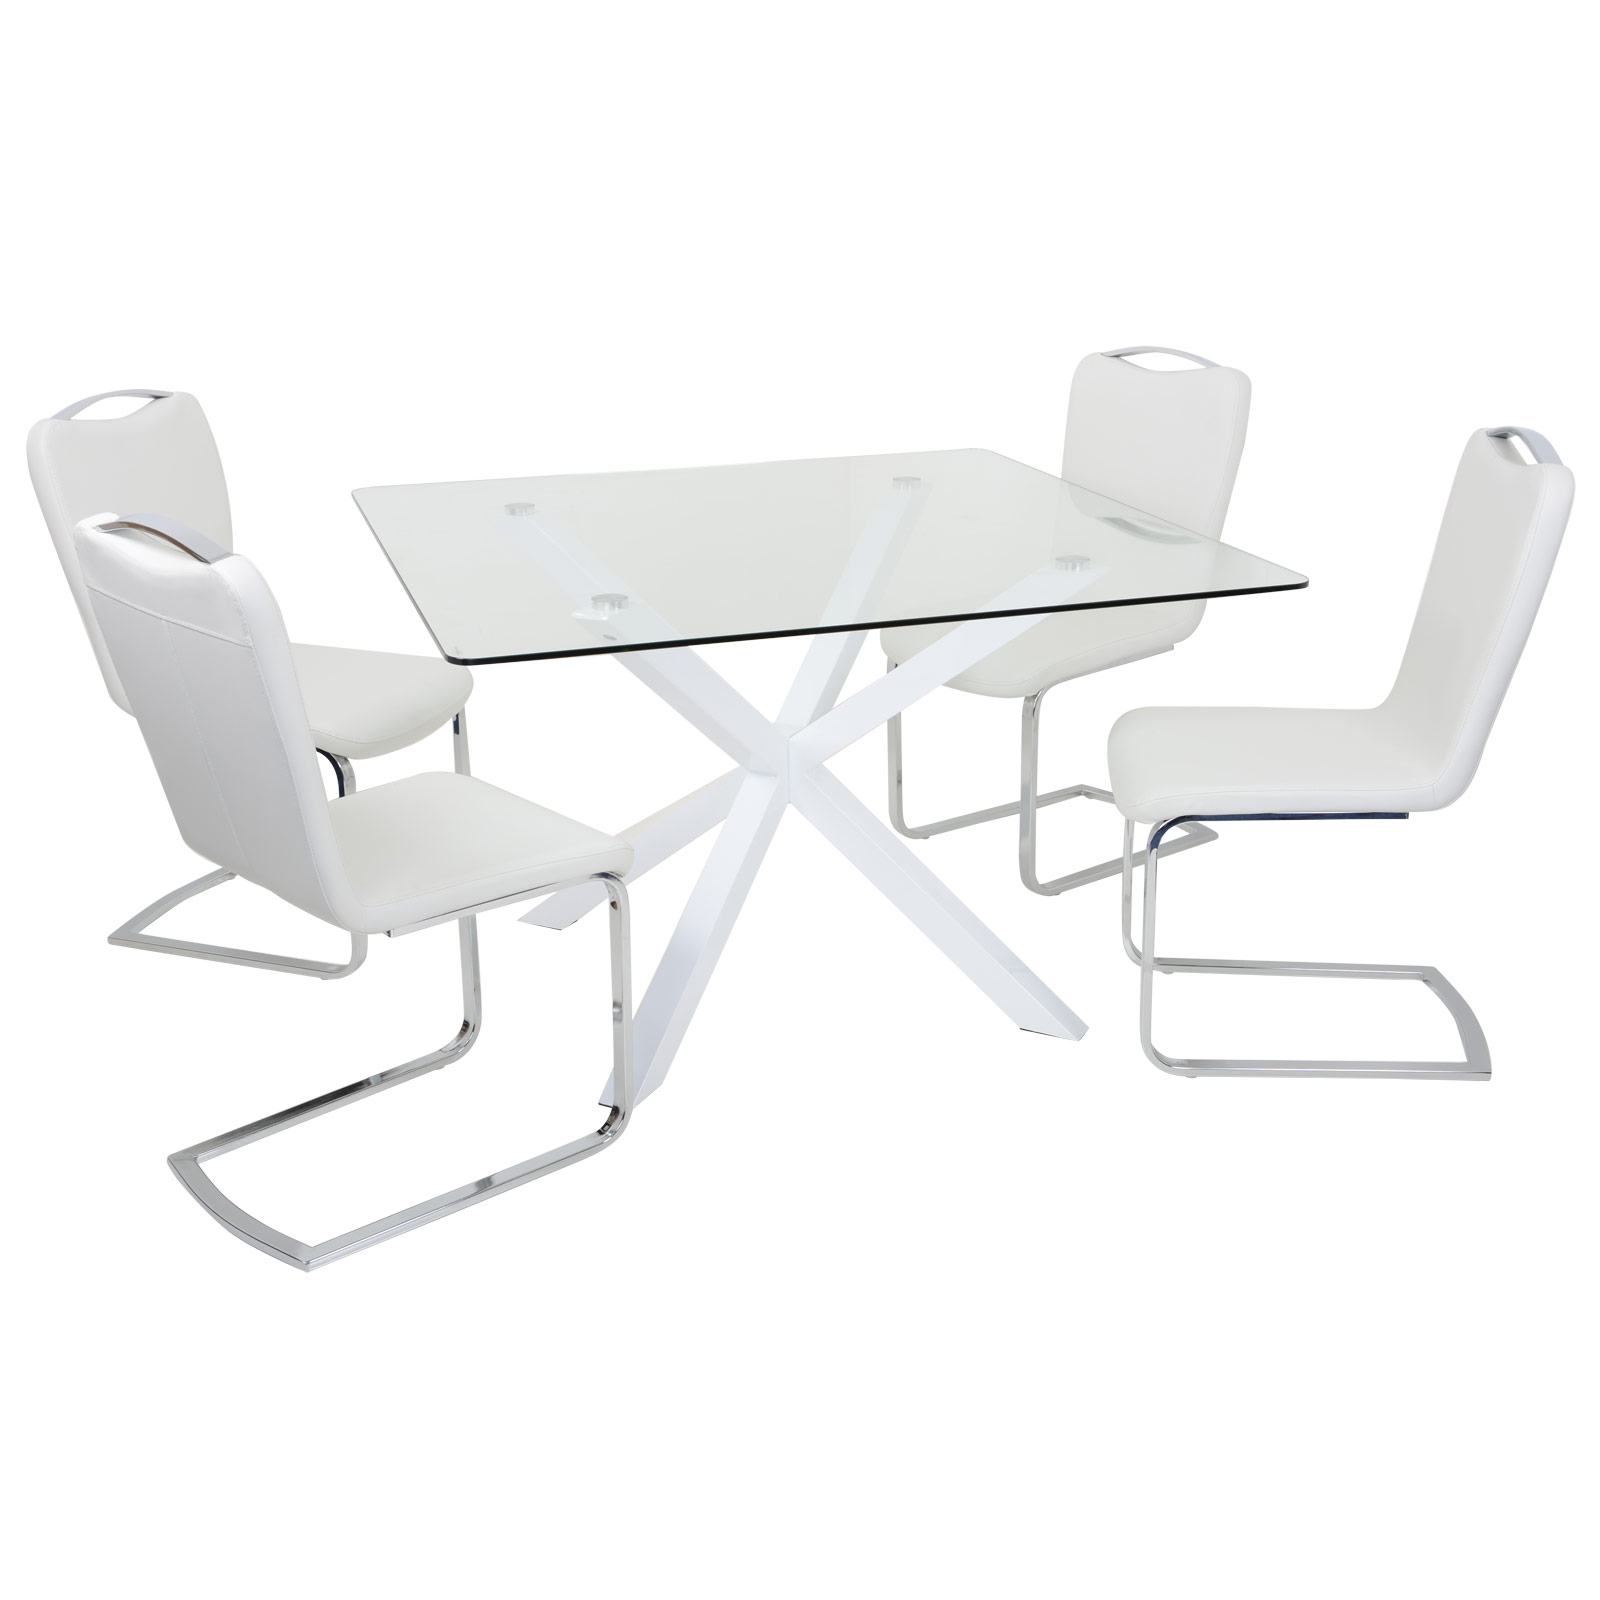 Square Glass Top Dining Table Details About Modern Dining Set Square Table With Clear Glass Top 4